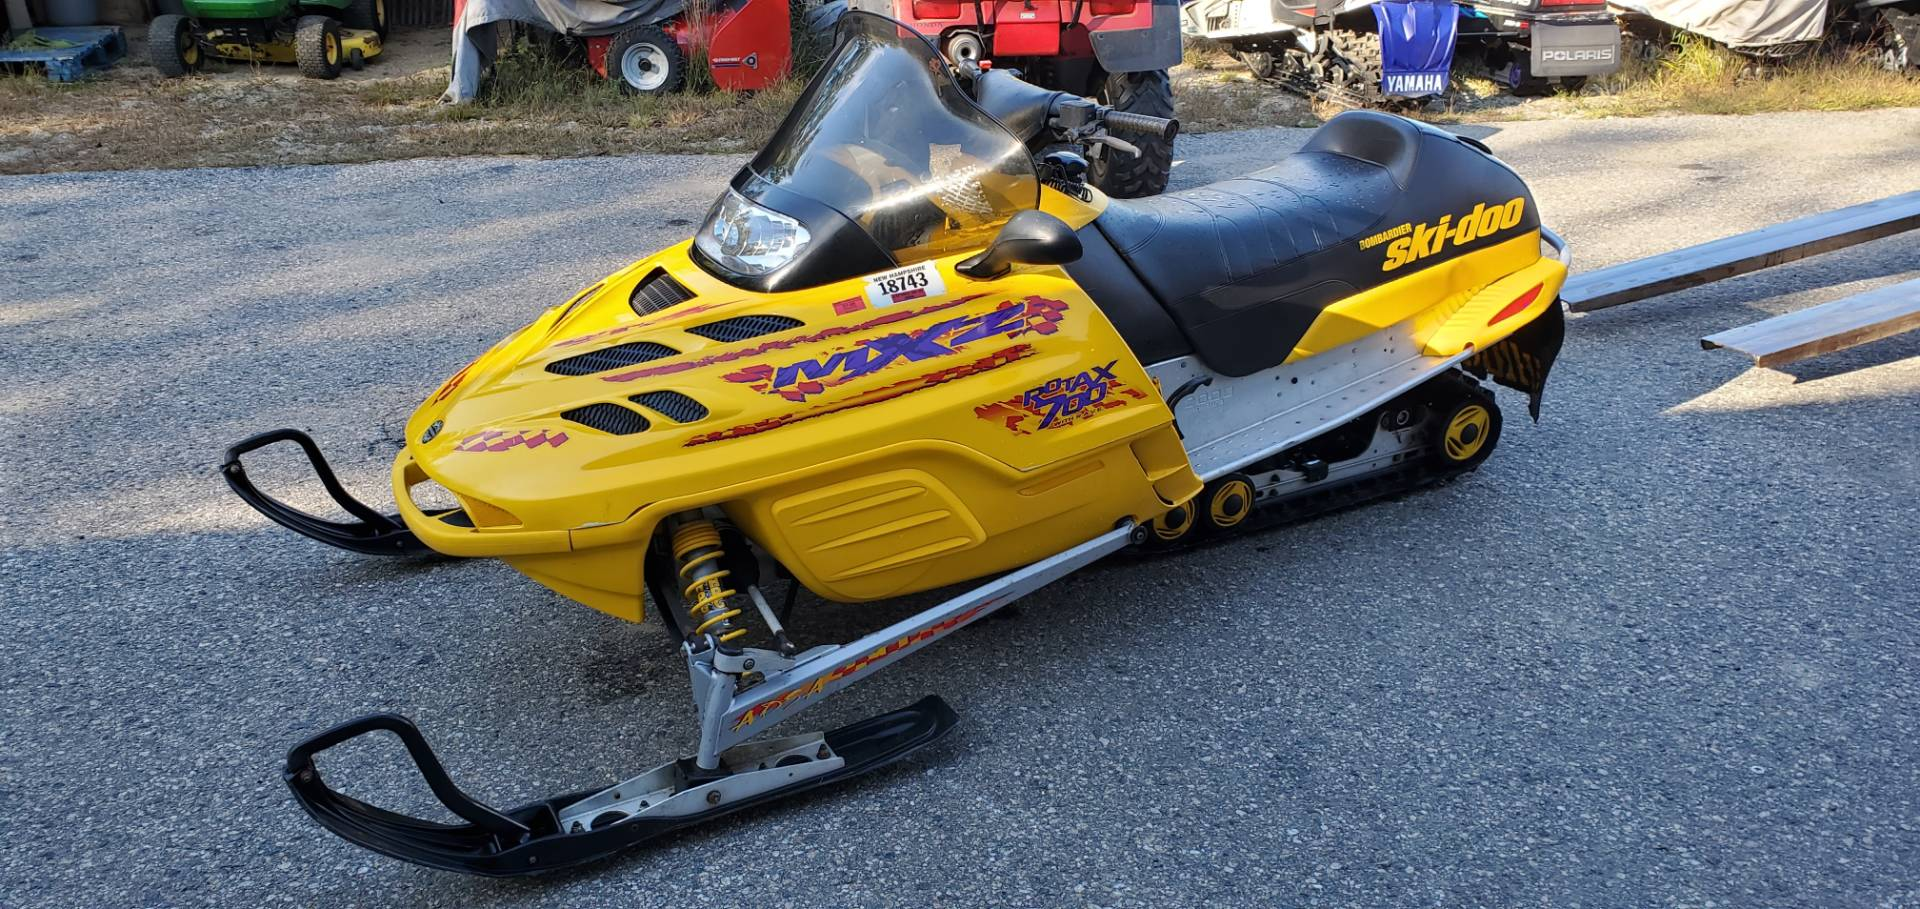 2000 Ski-Doo MX Z 700 in Tamworth, New Hampshire - Photo 1